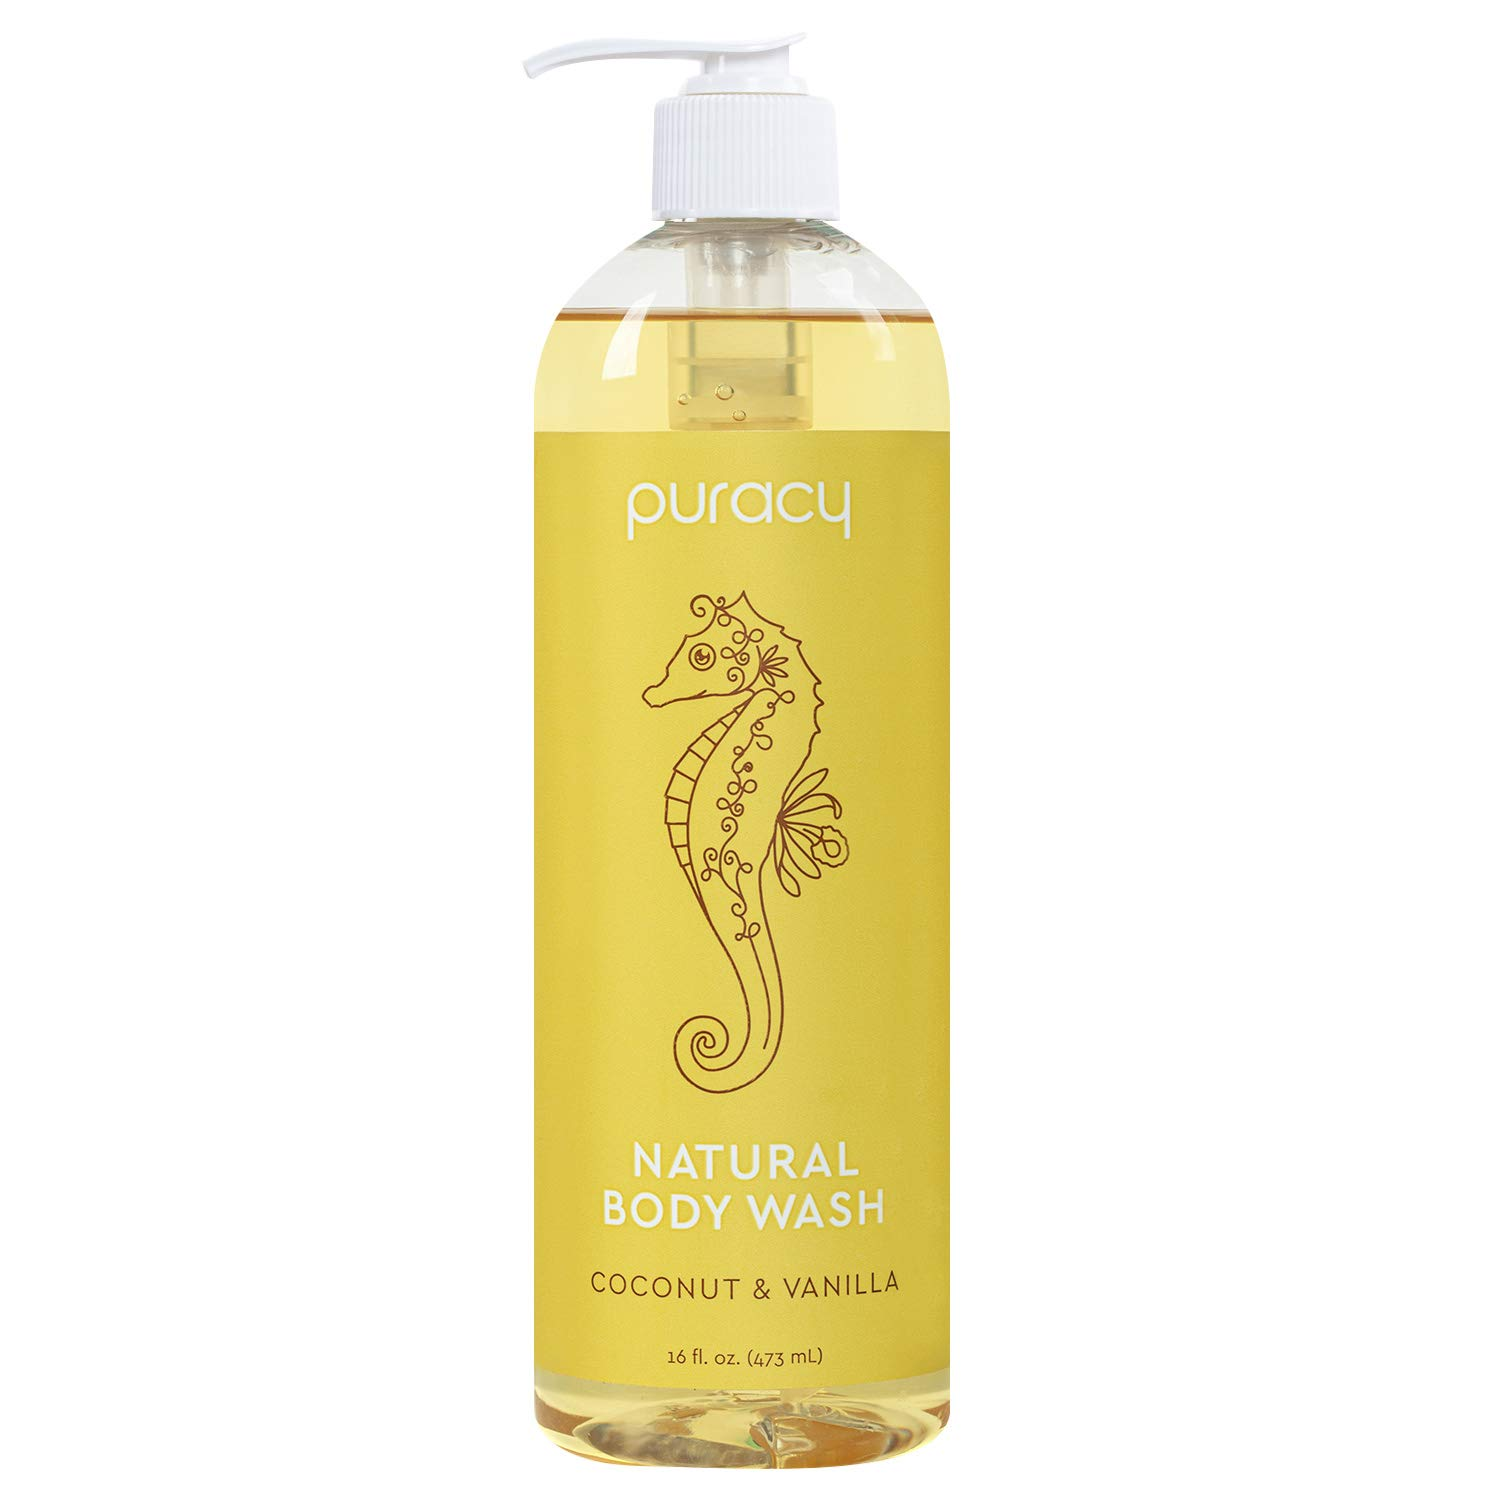 Puracy Natural Body Wash, Sulfate-Free Bath and Shower Gel, Coconut & Vanilla, 16 Fl Oz (Pack of 1)